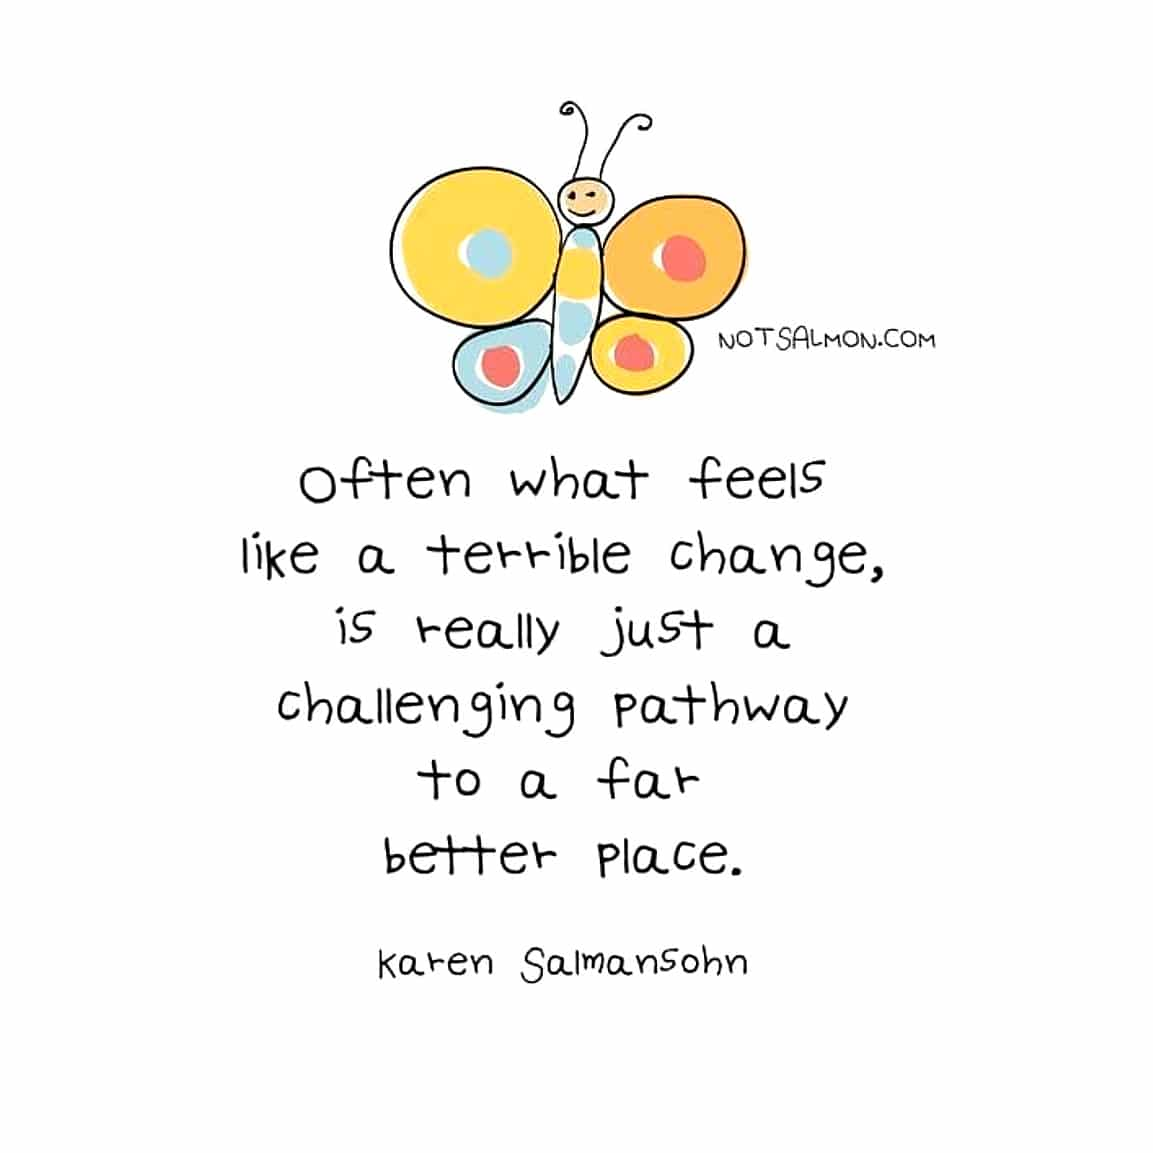 quote fear of change pathway to better place